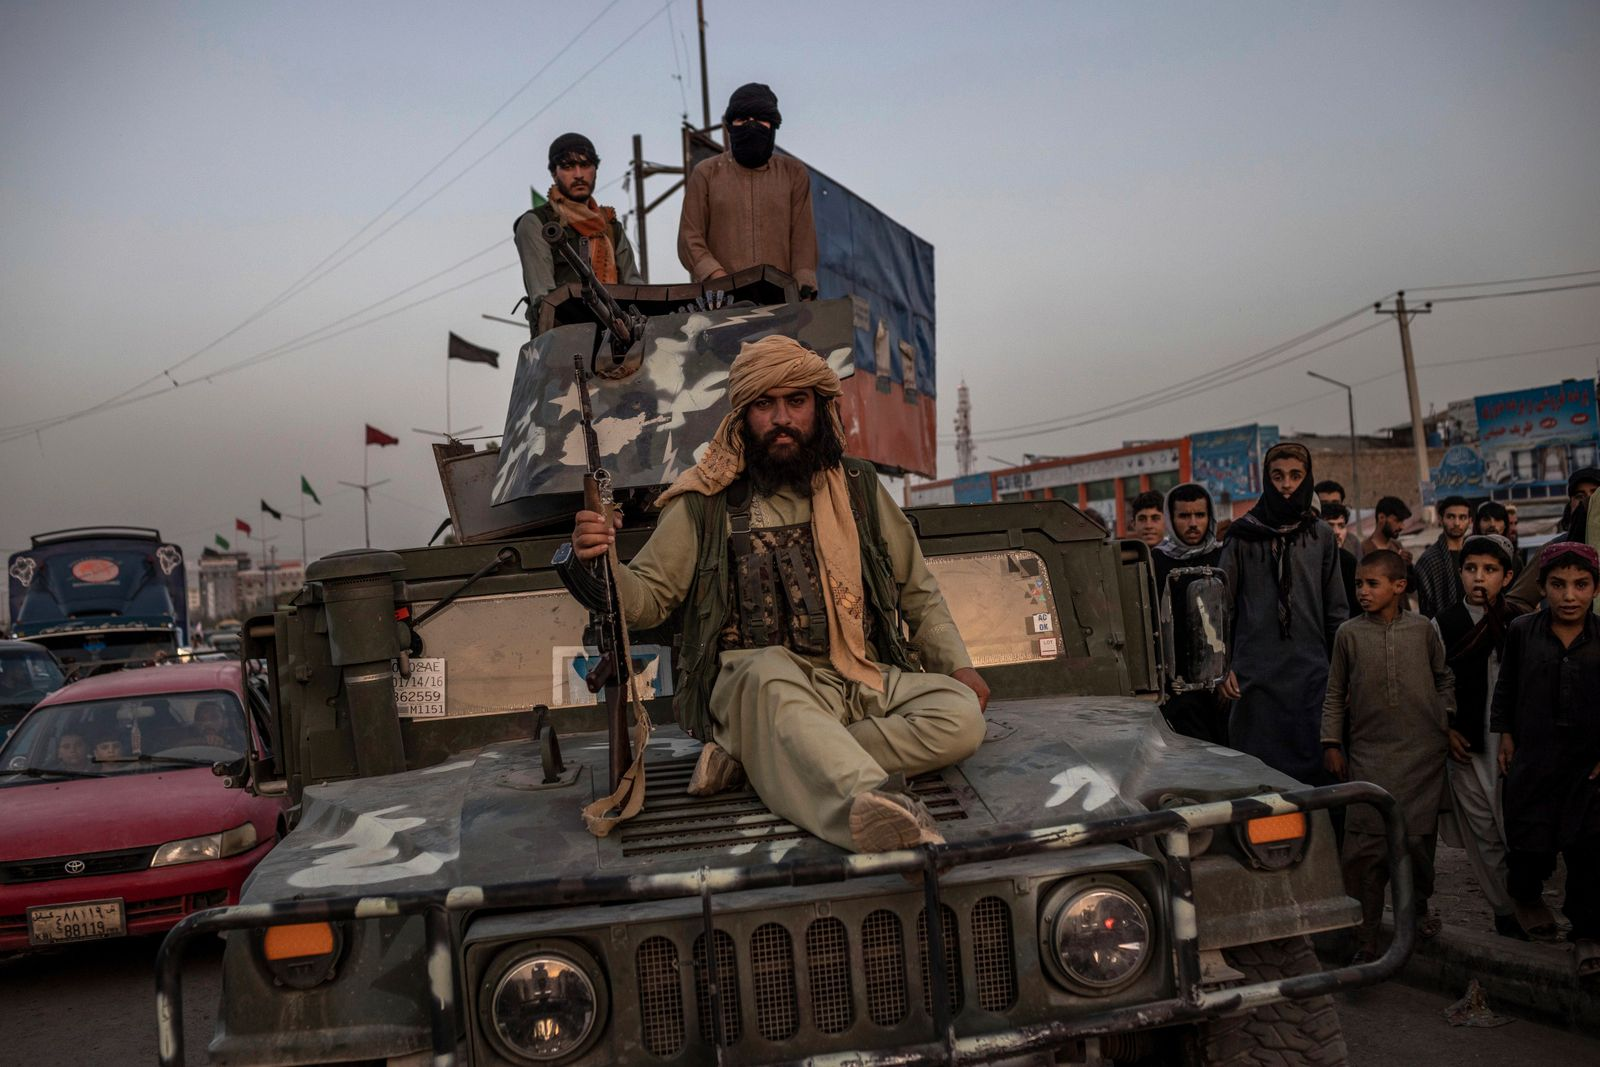 Taliban fighters on a Humvee in Kabul, Afghanistan, Aug. 15, 2021. (Jim Huylebroek/The New York Times)